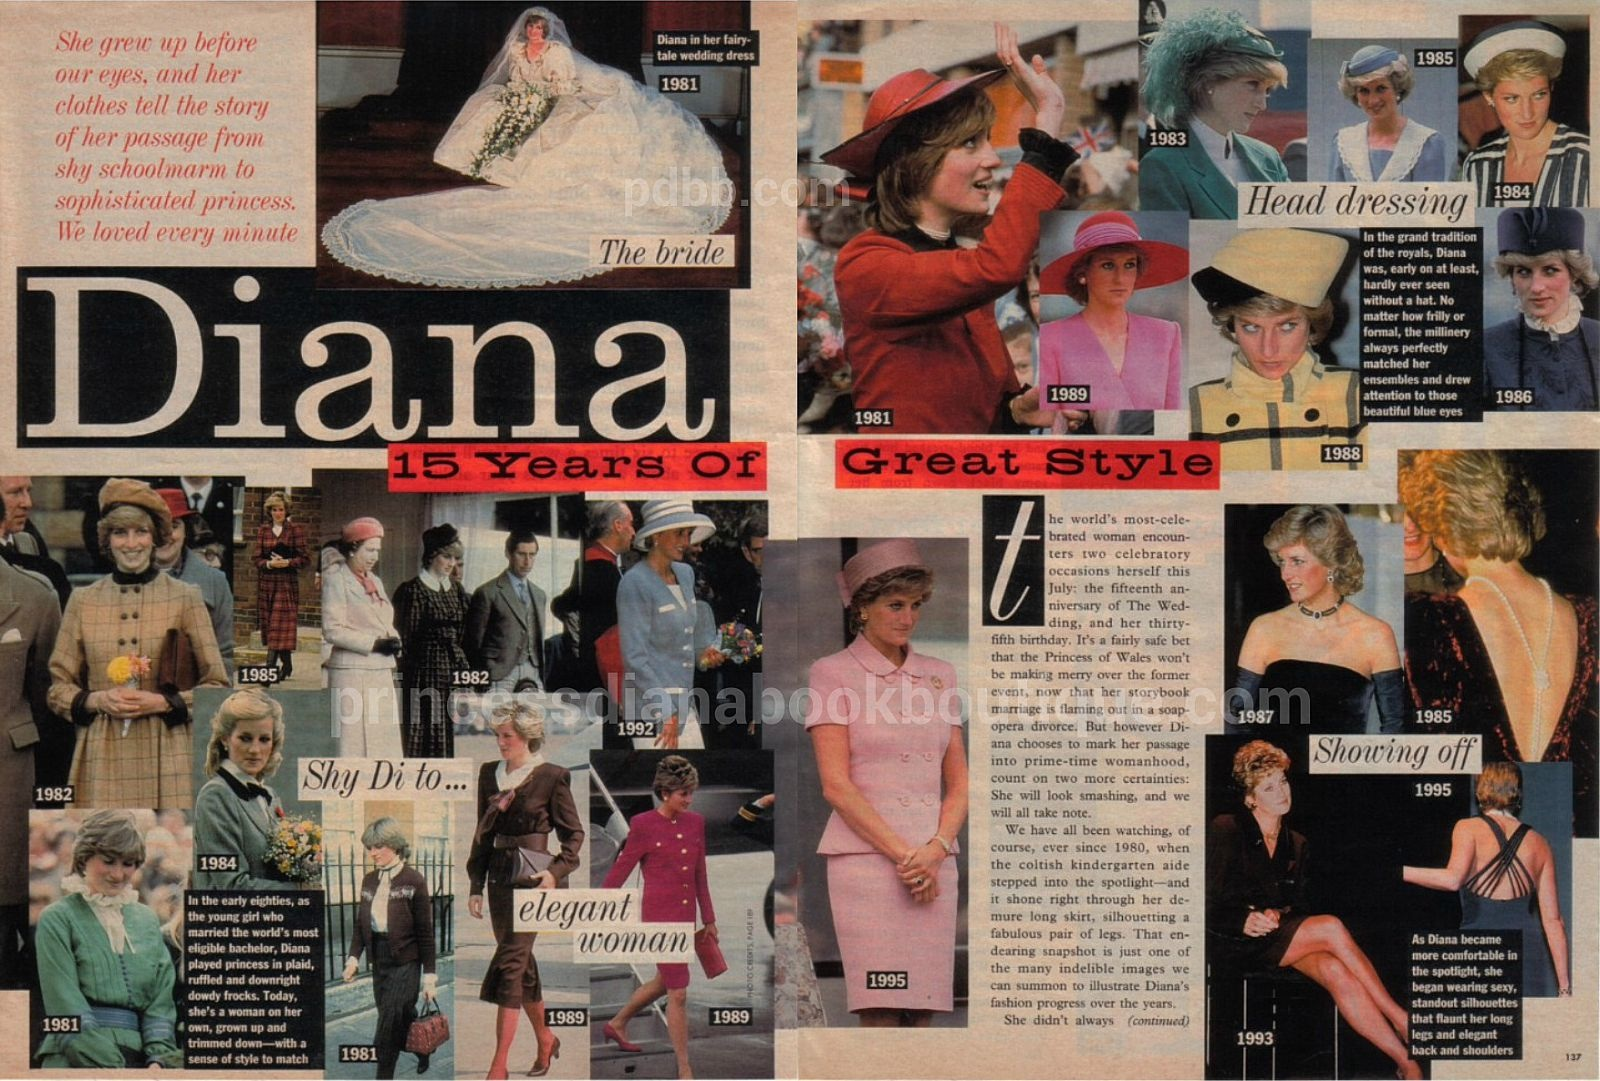 Our Princess Diana Fashion Article Today 15 Years Of Great Diana Style Part I Princess Diana